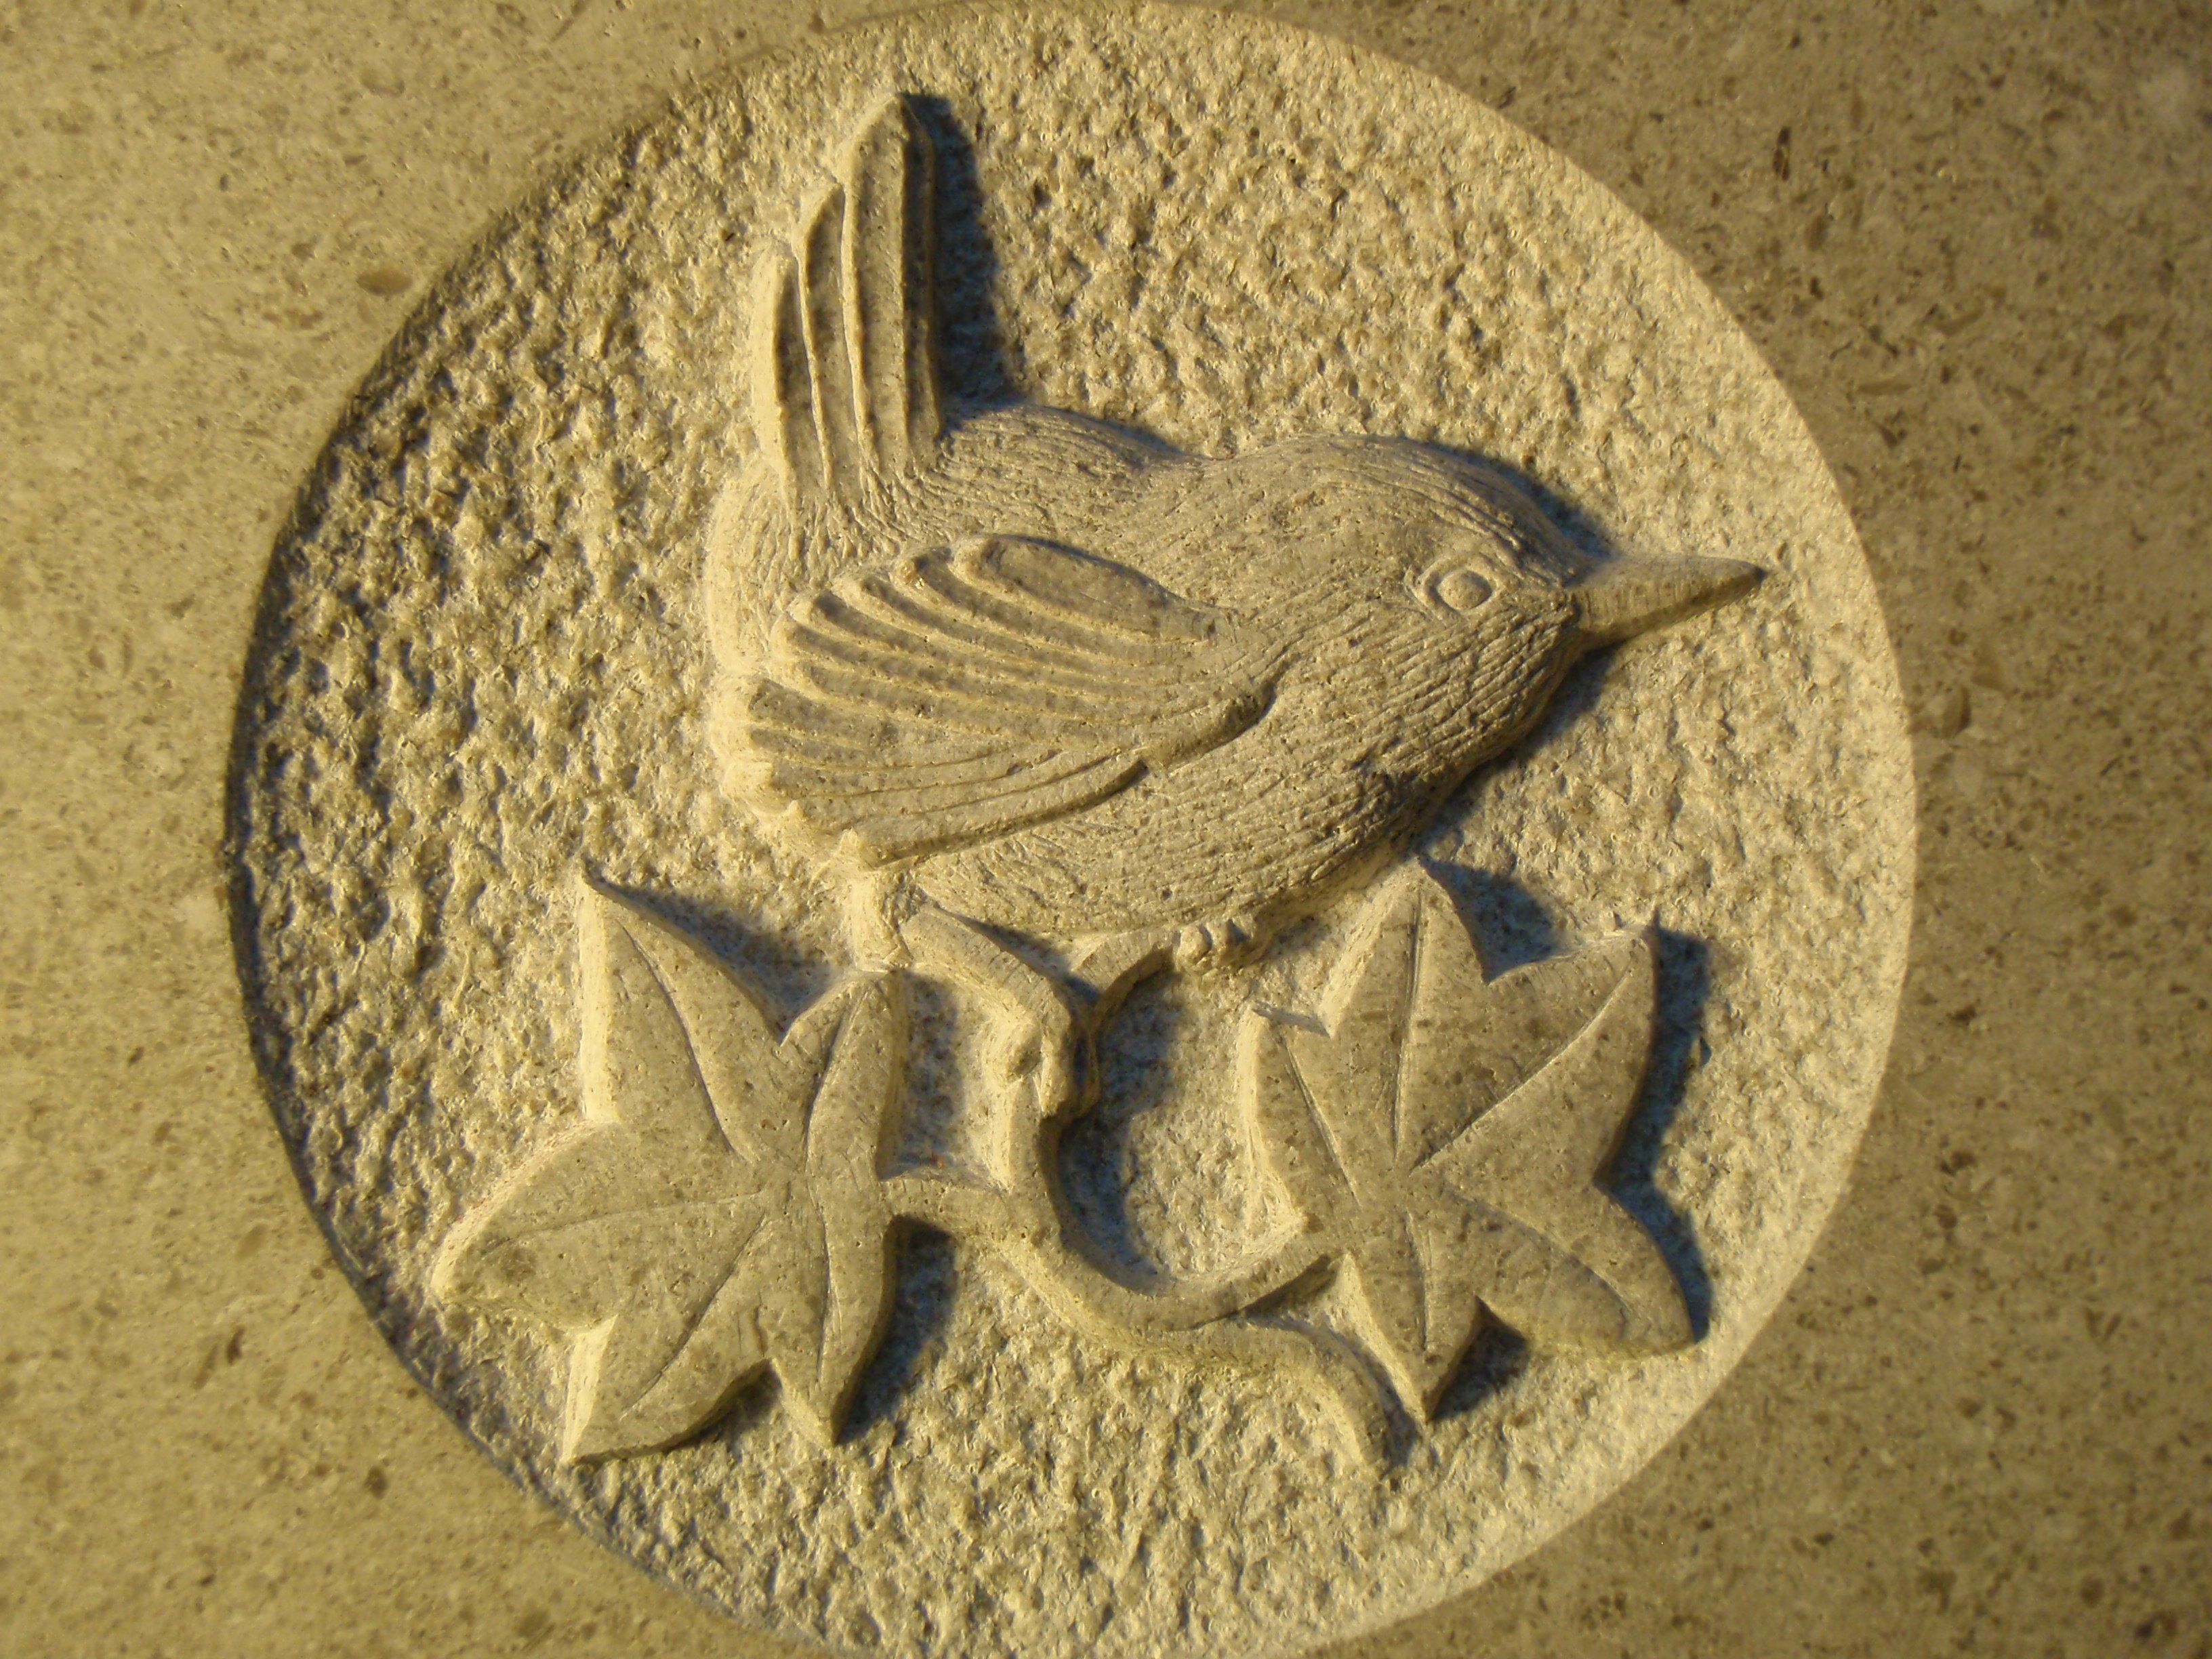 bird relief carving - Google Search | Stone Relief | Pinterest